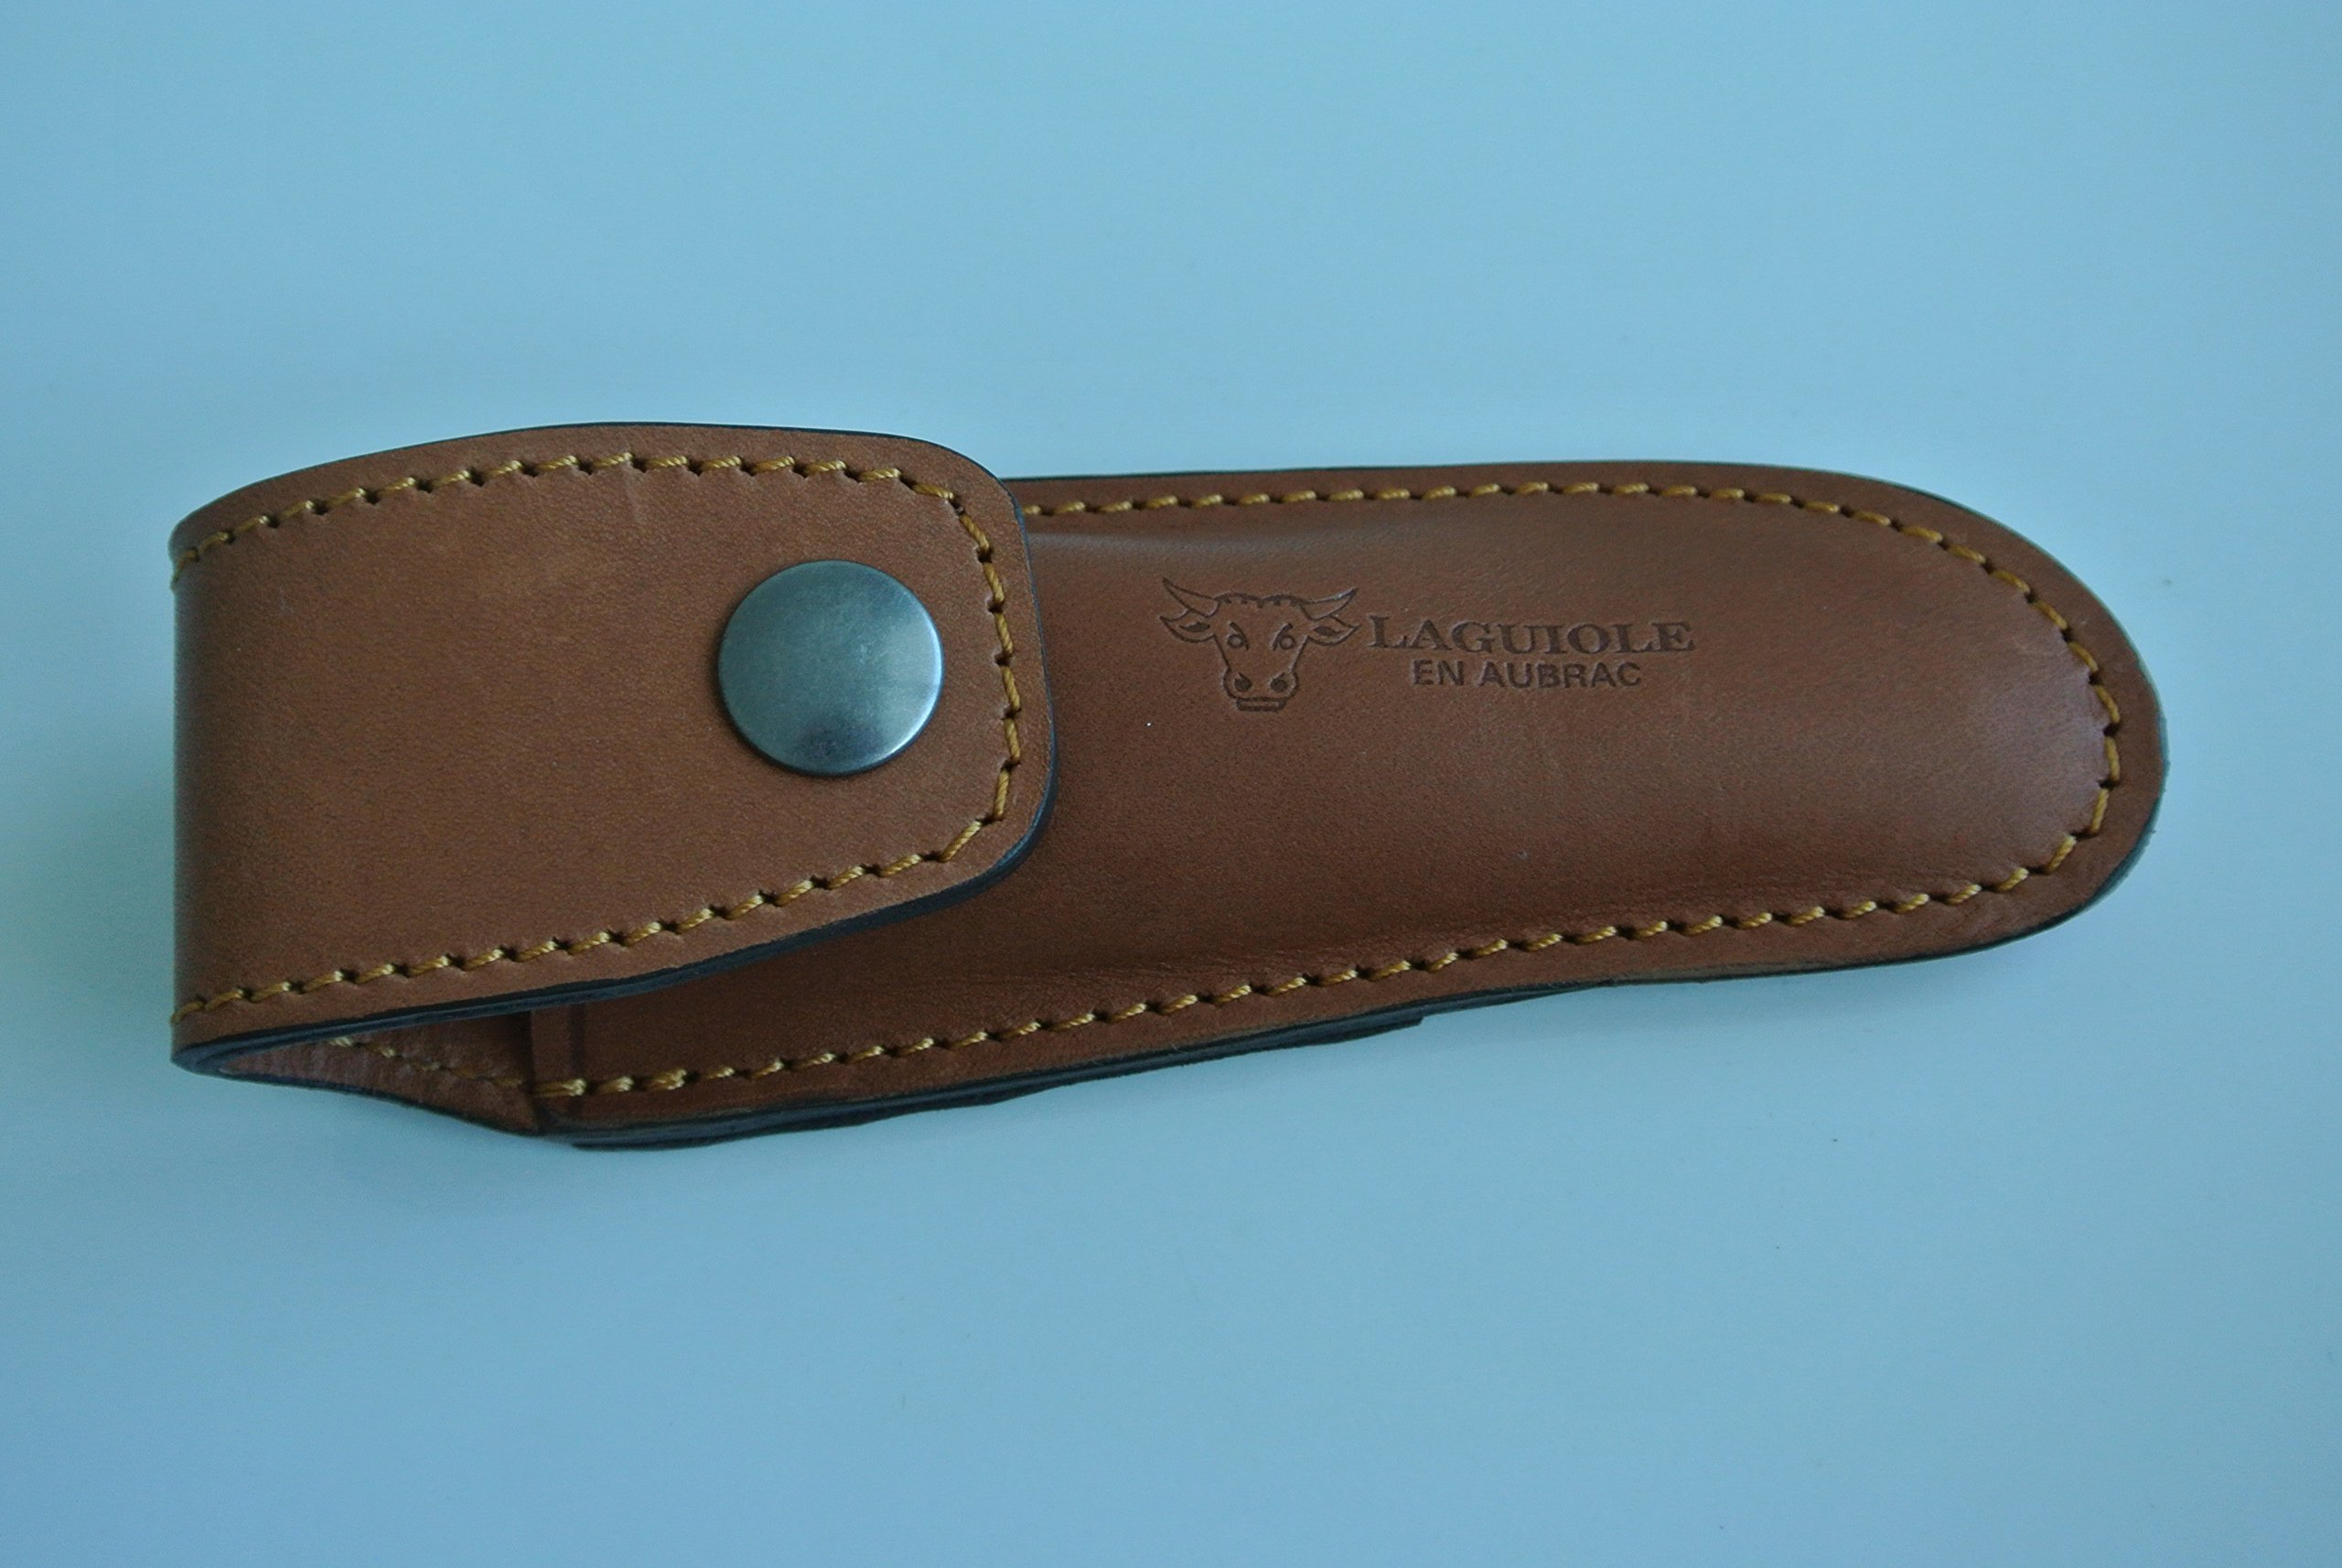 Laguiole en Aubrac Leather Holster For Folding Knife, ECD Brown